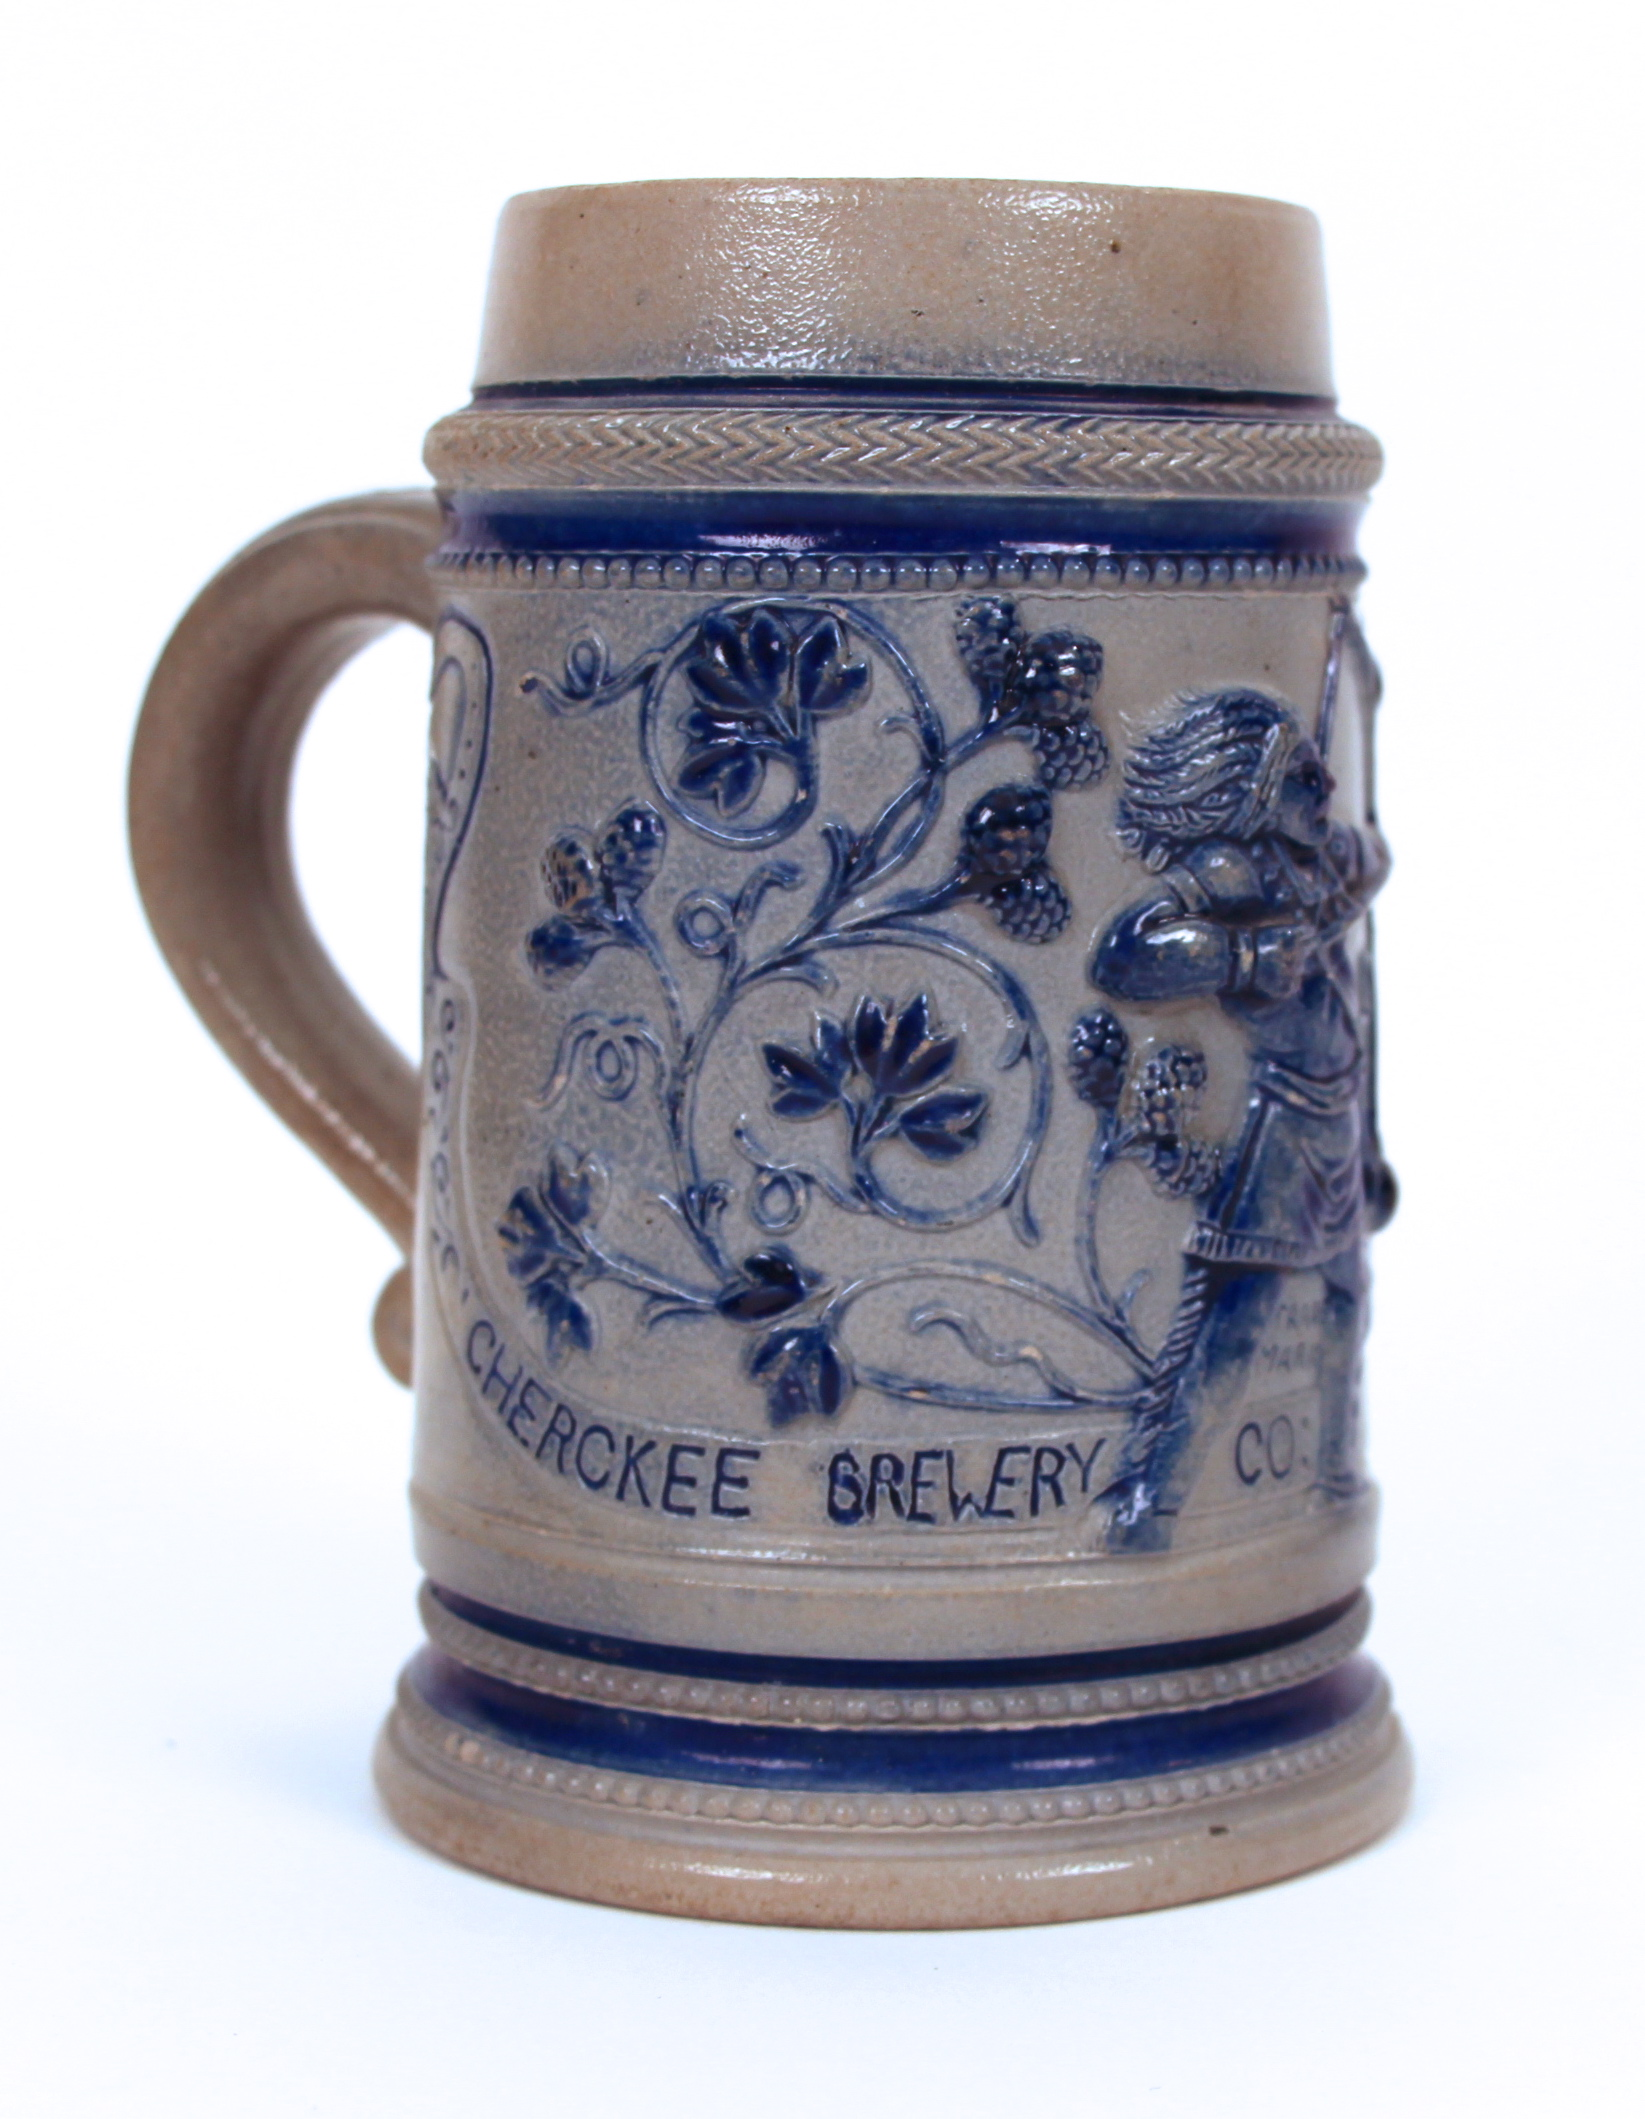 Cherokee Brewery Beer Mug 1890 Side View